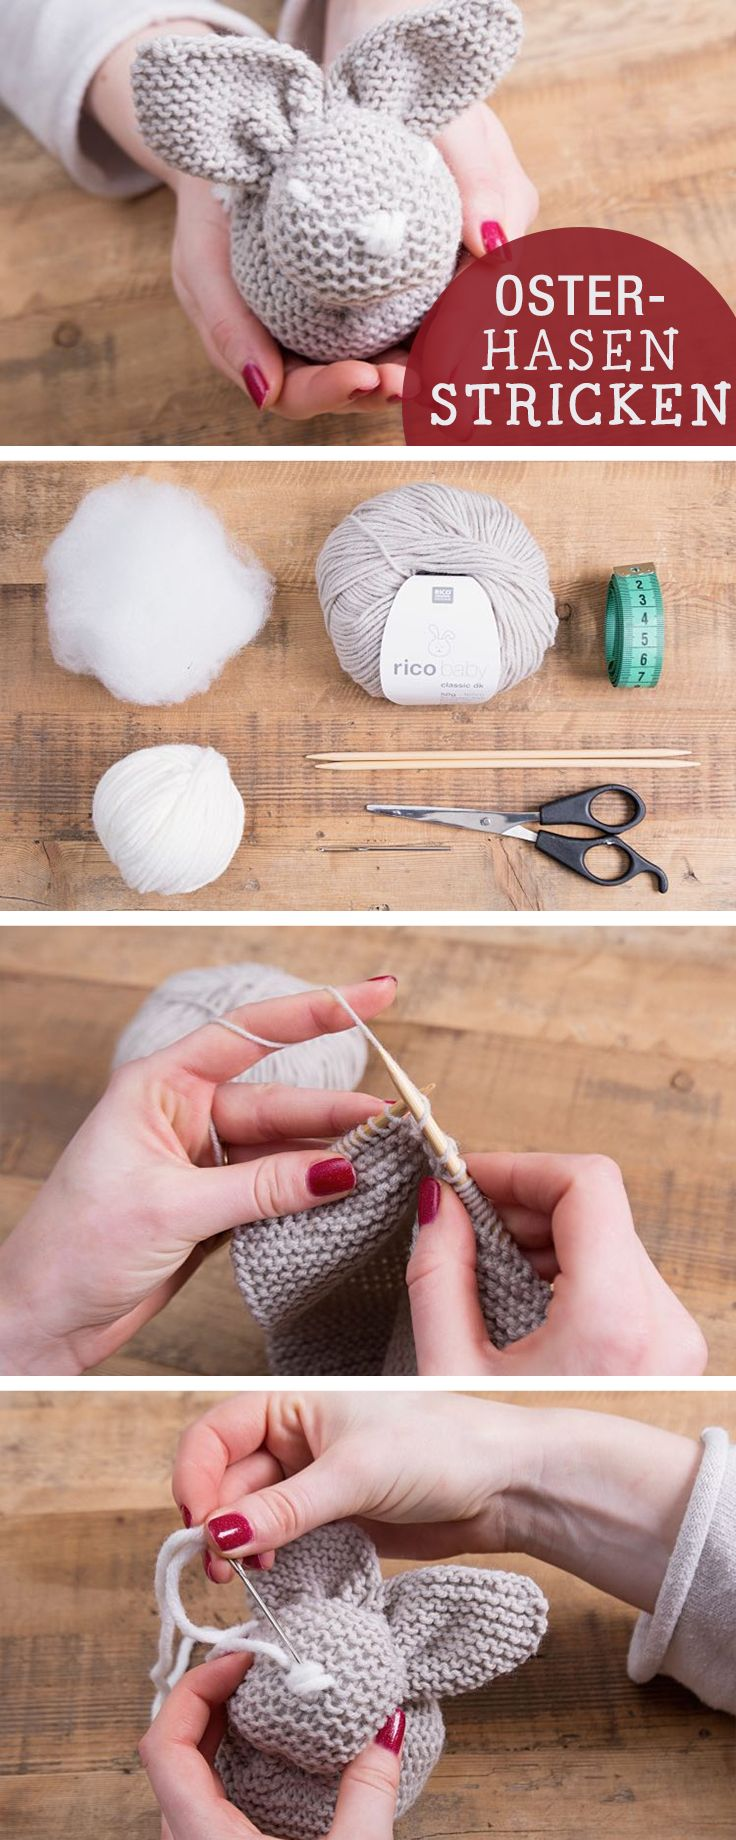 DIY-Anleitung: Osterhase stricken, Osterdeko / diy tutorial: how to knit an easter bunny via DaWanda.com